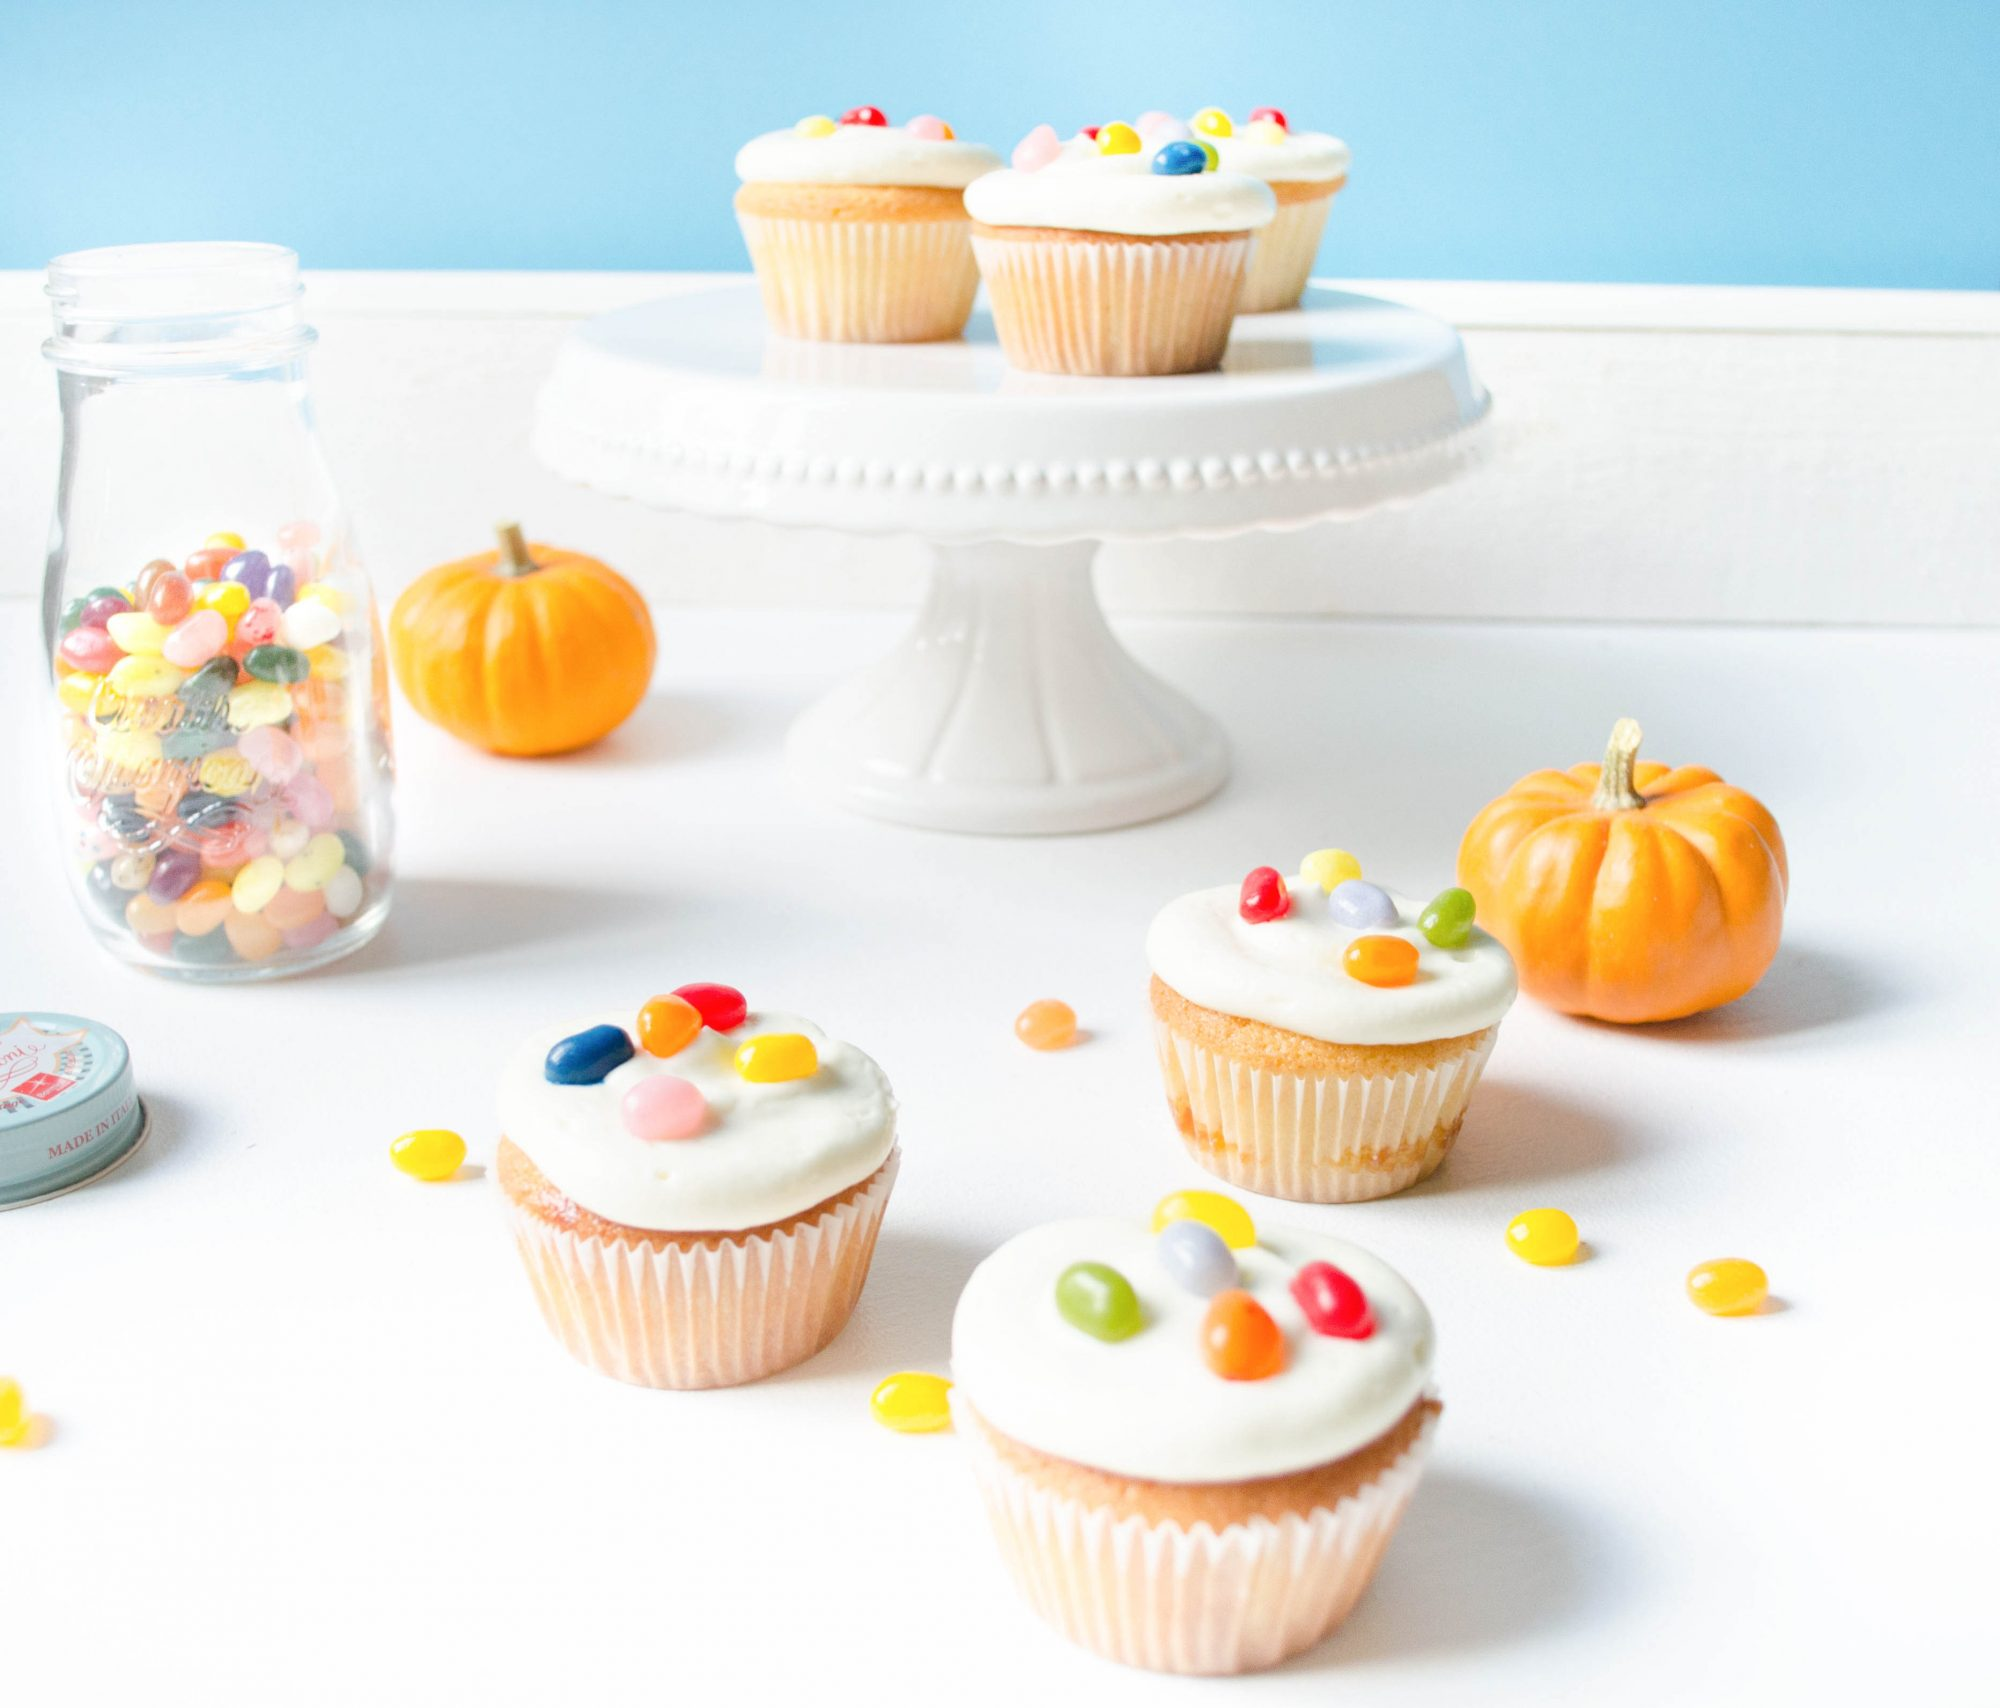 trick-or-treat-cupcakes-vanilla-jelly-beans-halloween